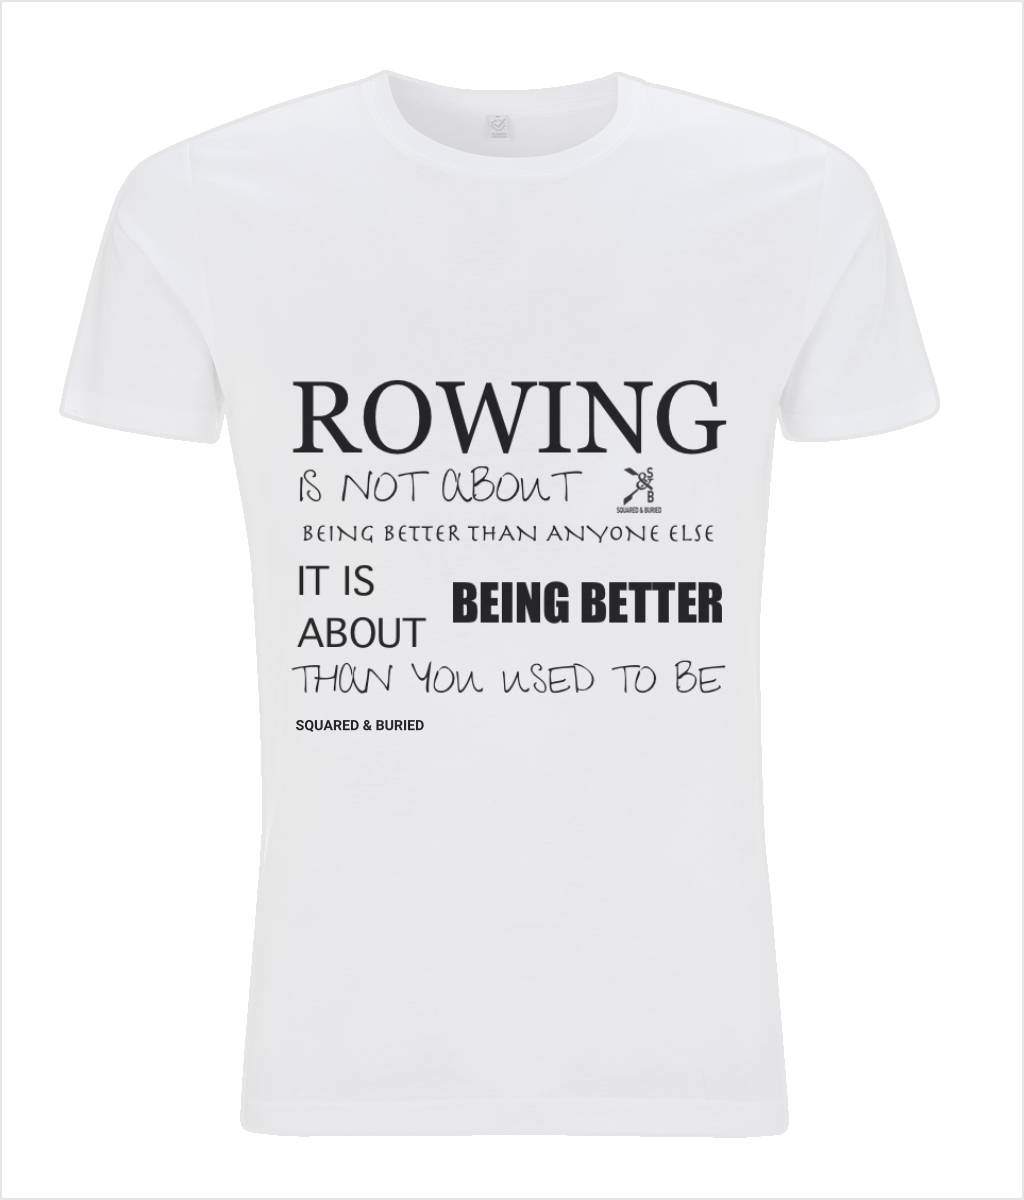 BEING BETTER ORGANIC SLIM FIT T-SHIRT - British Rowing Apparel - Squared & Buried